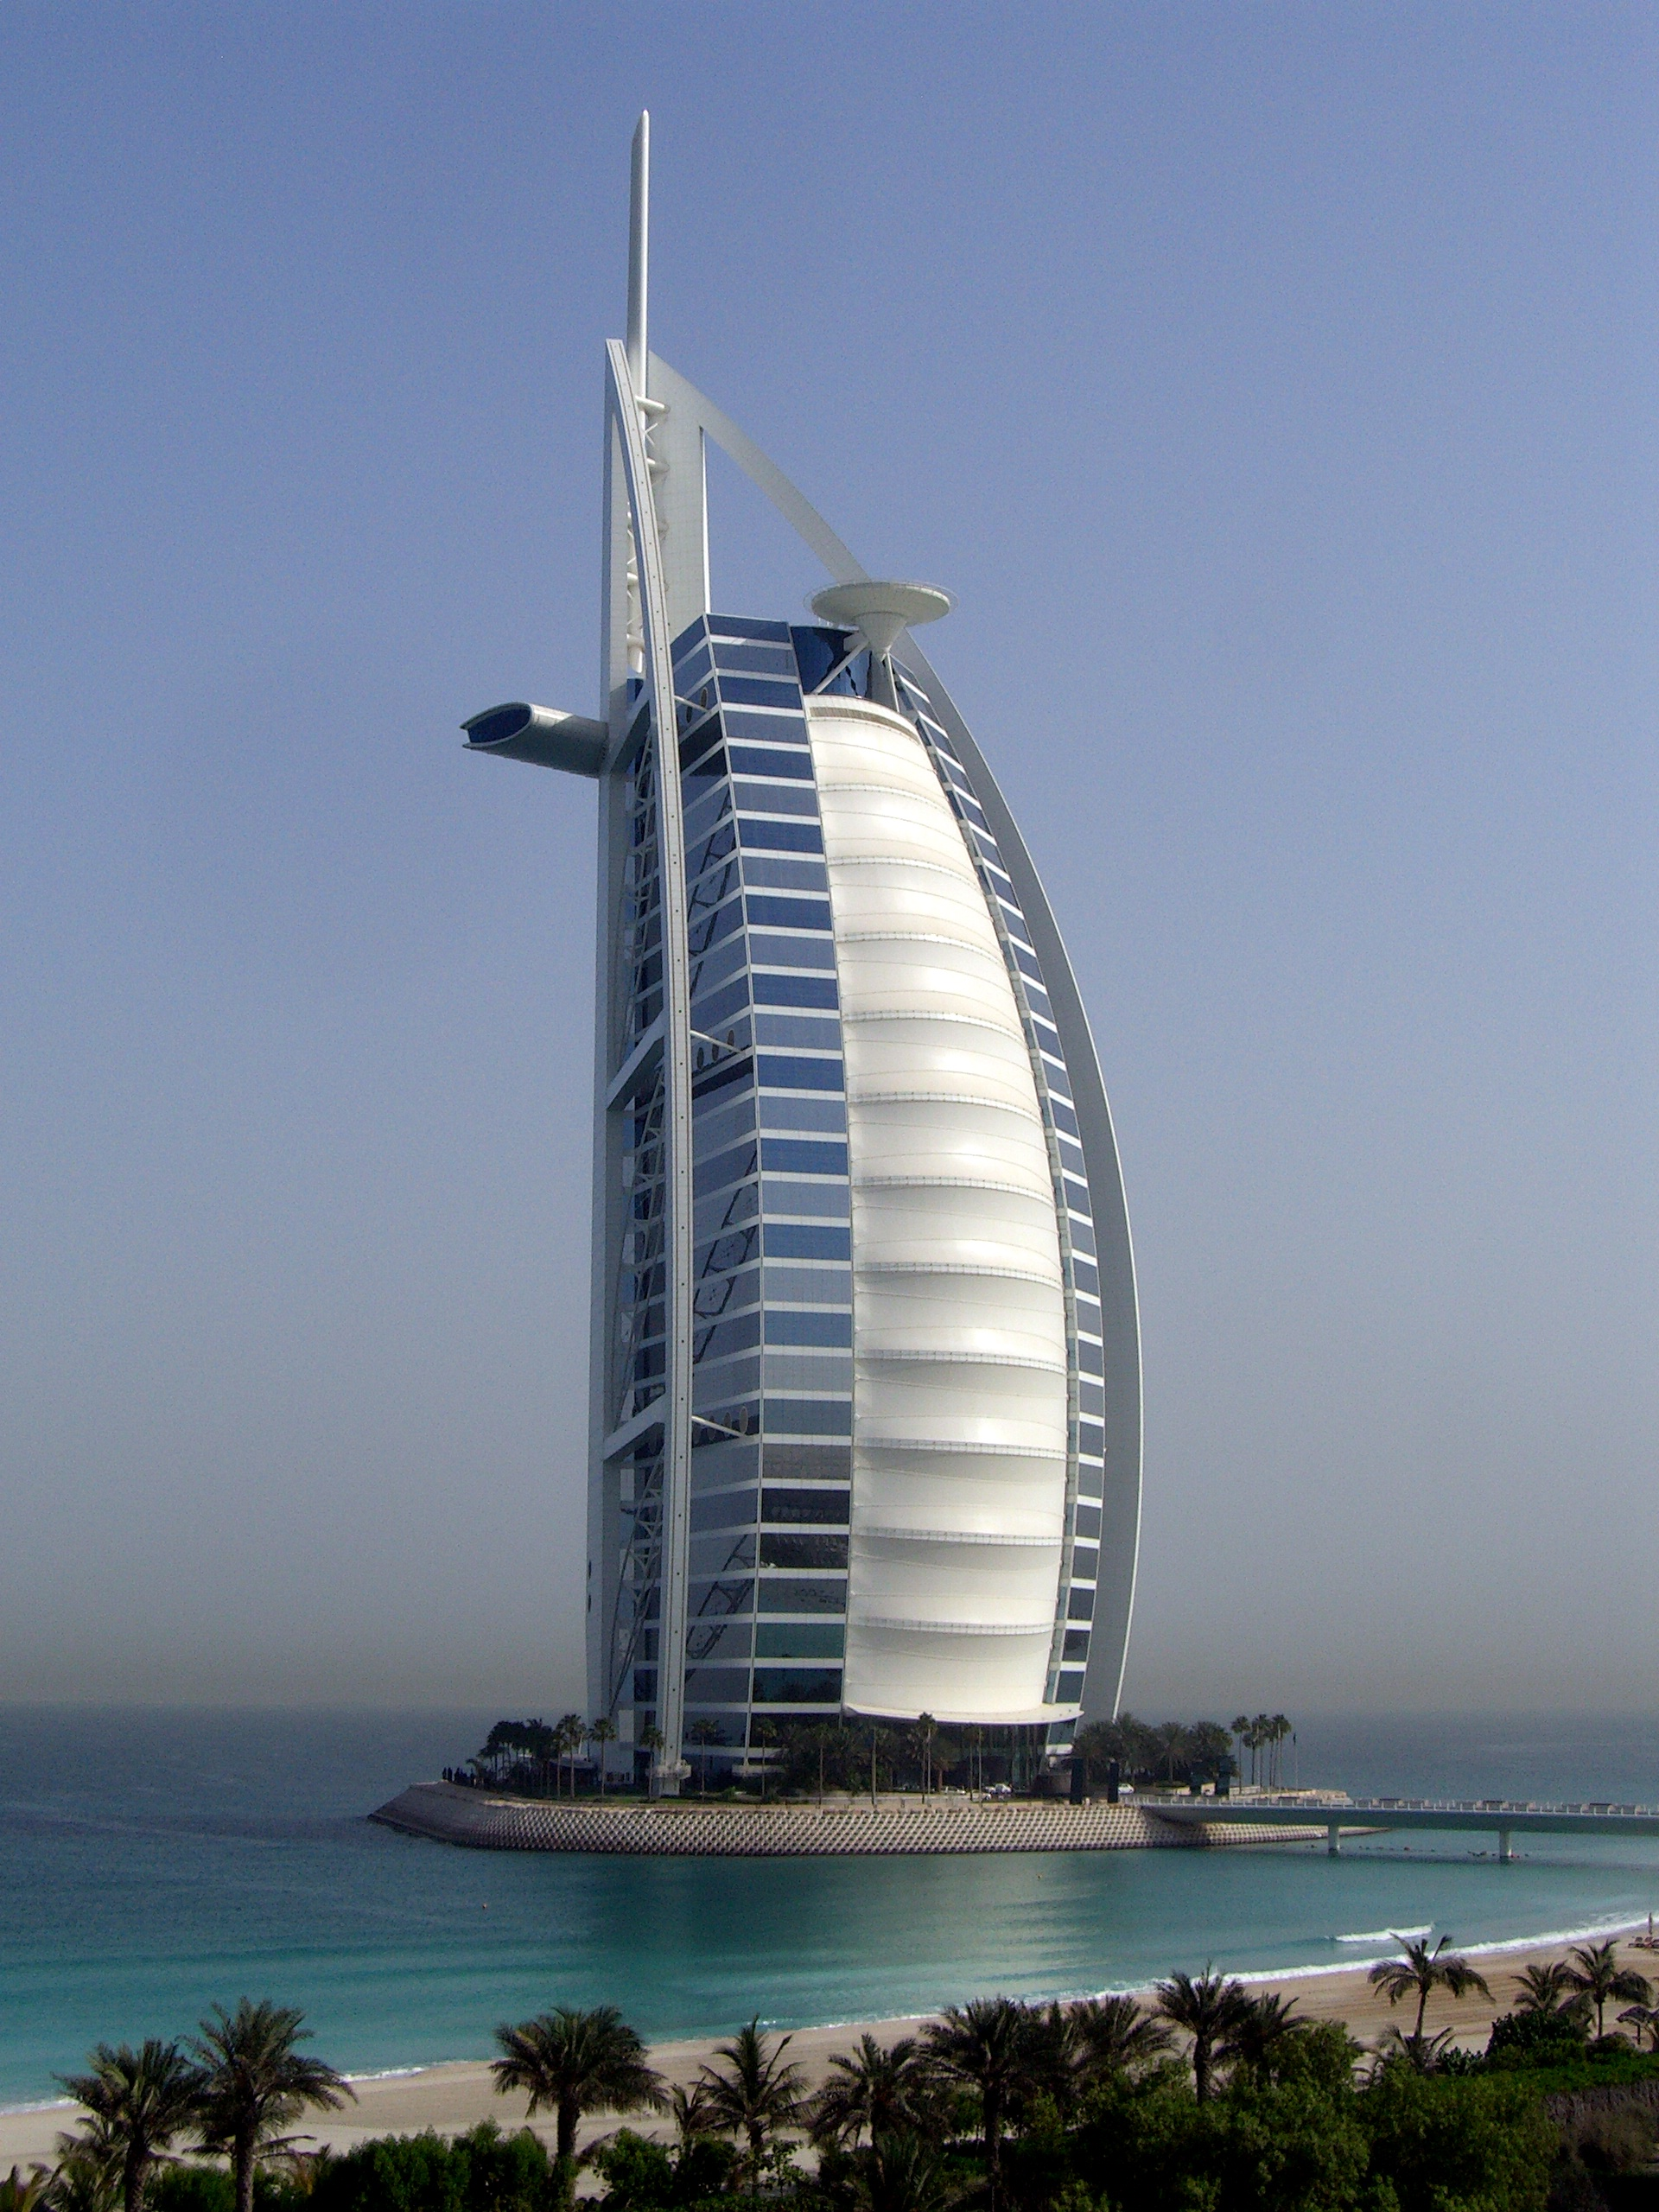 Burj al arab dubai uae thought rot for Dubai burj al arab